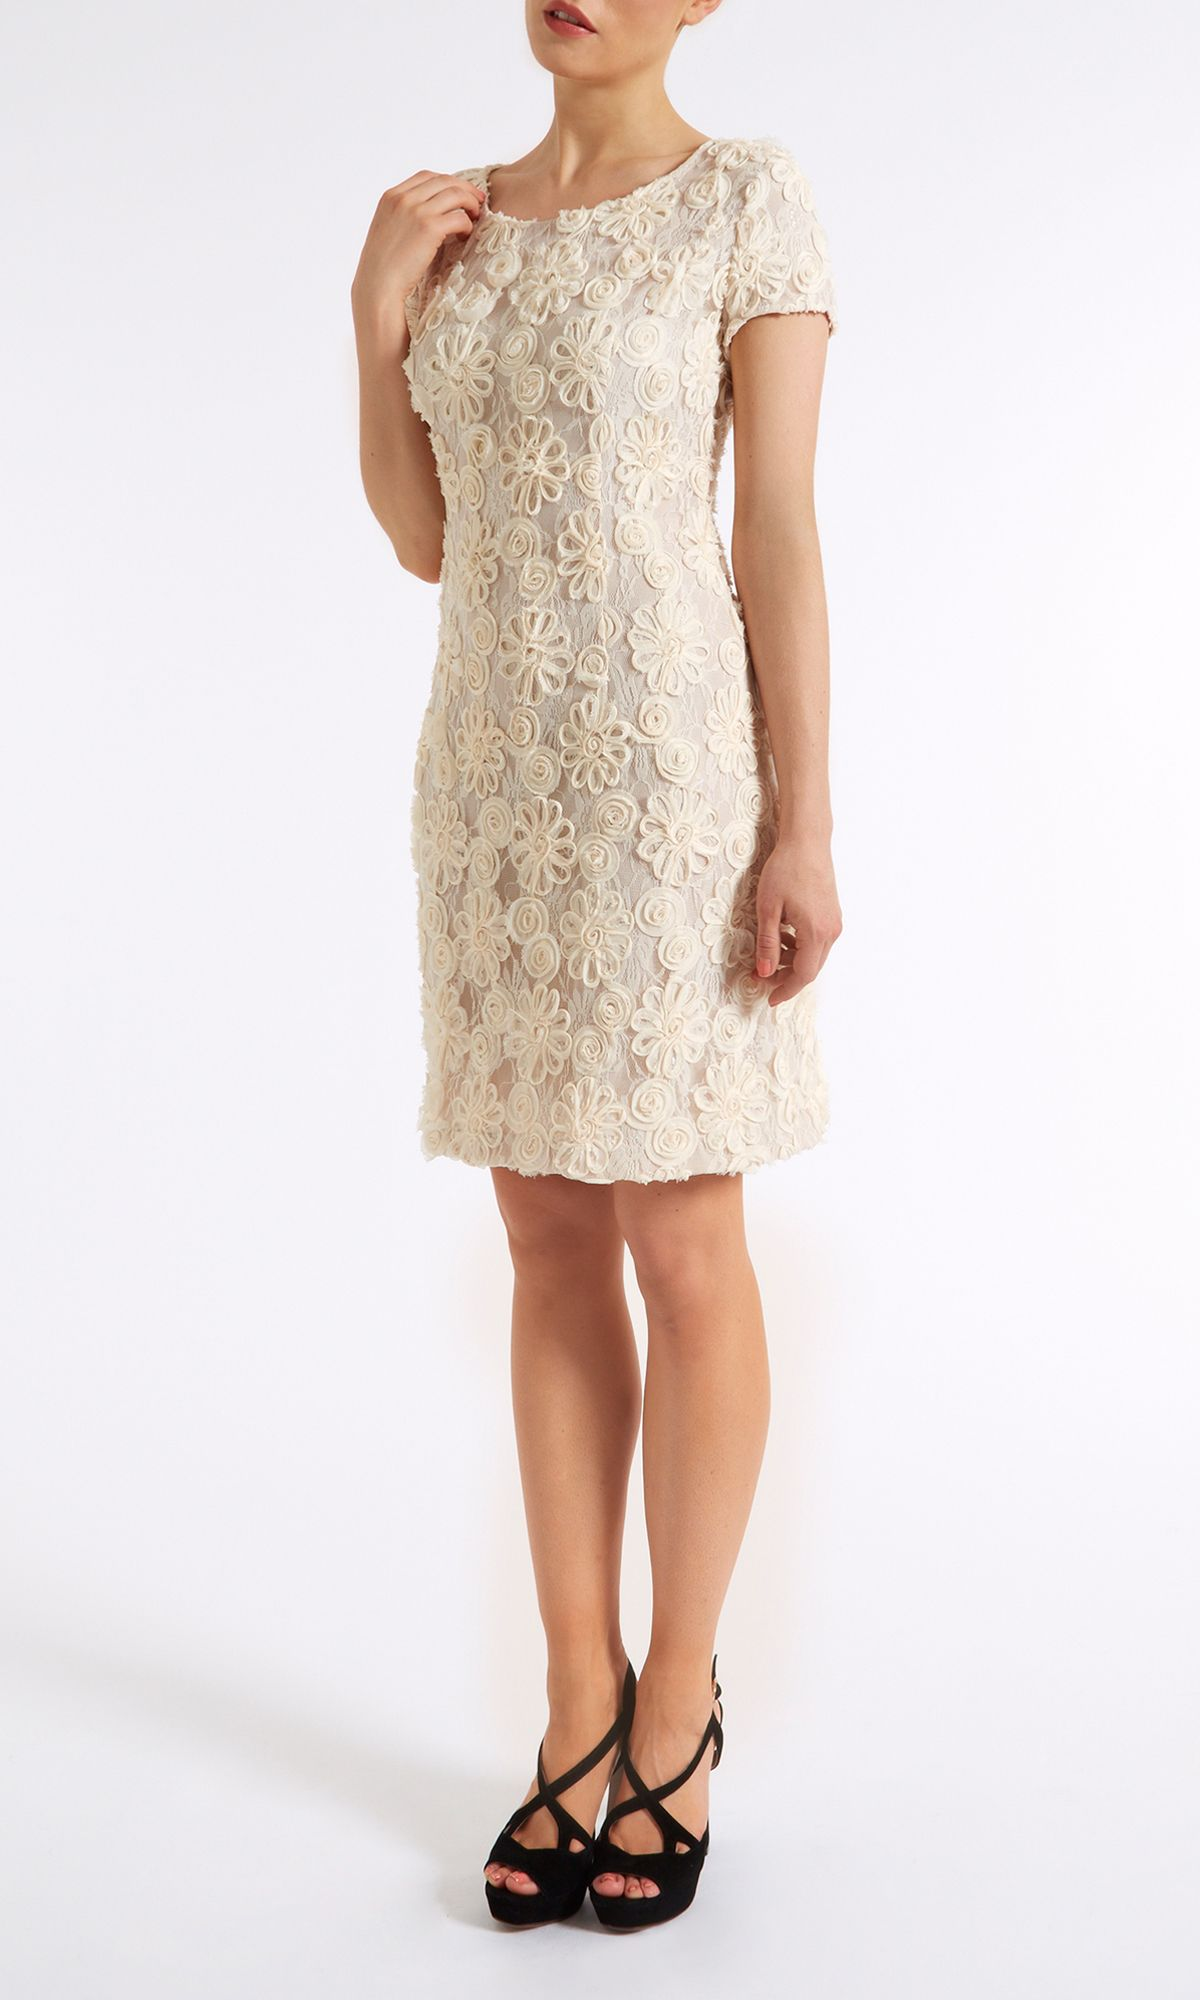 Tailored lace dress